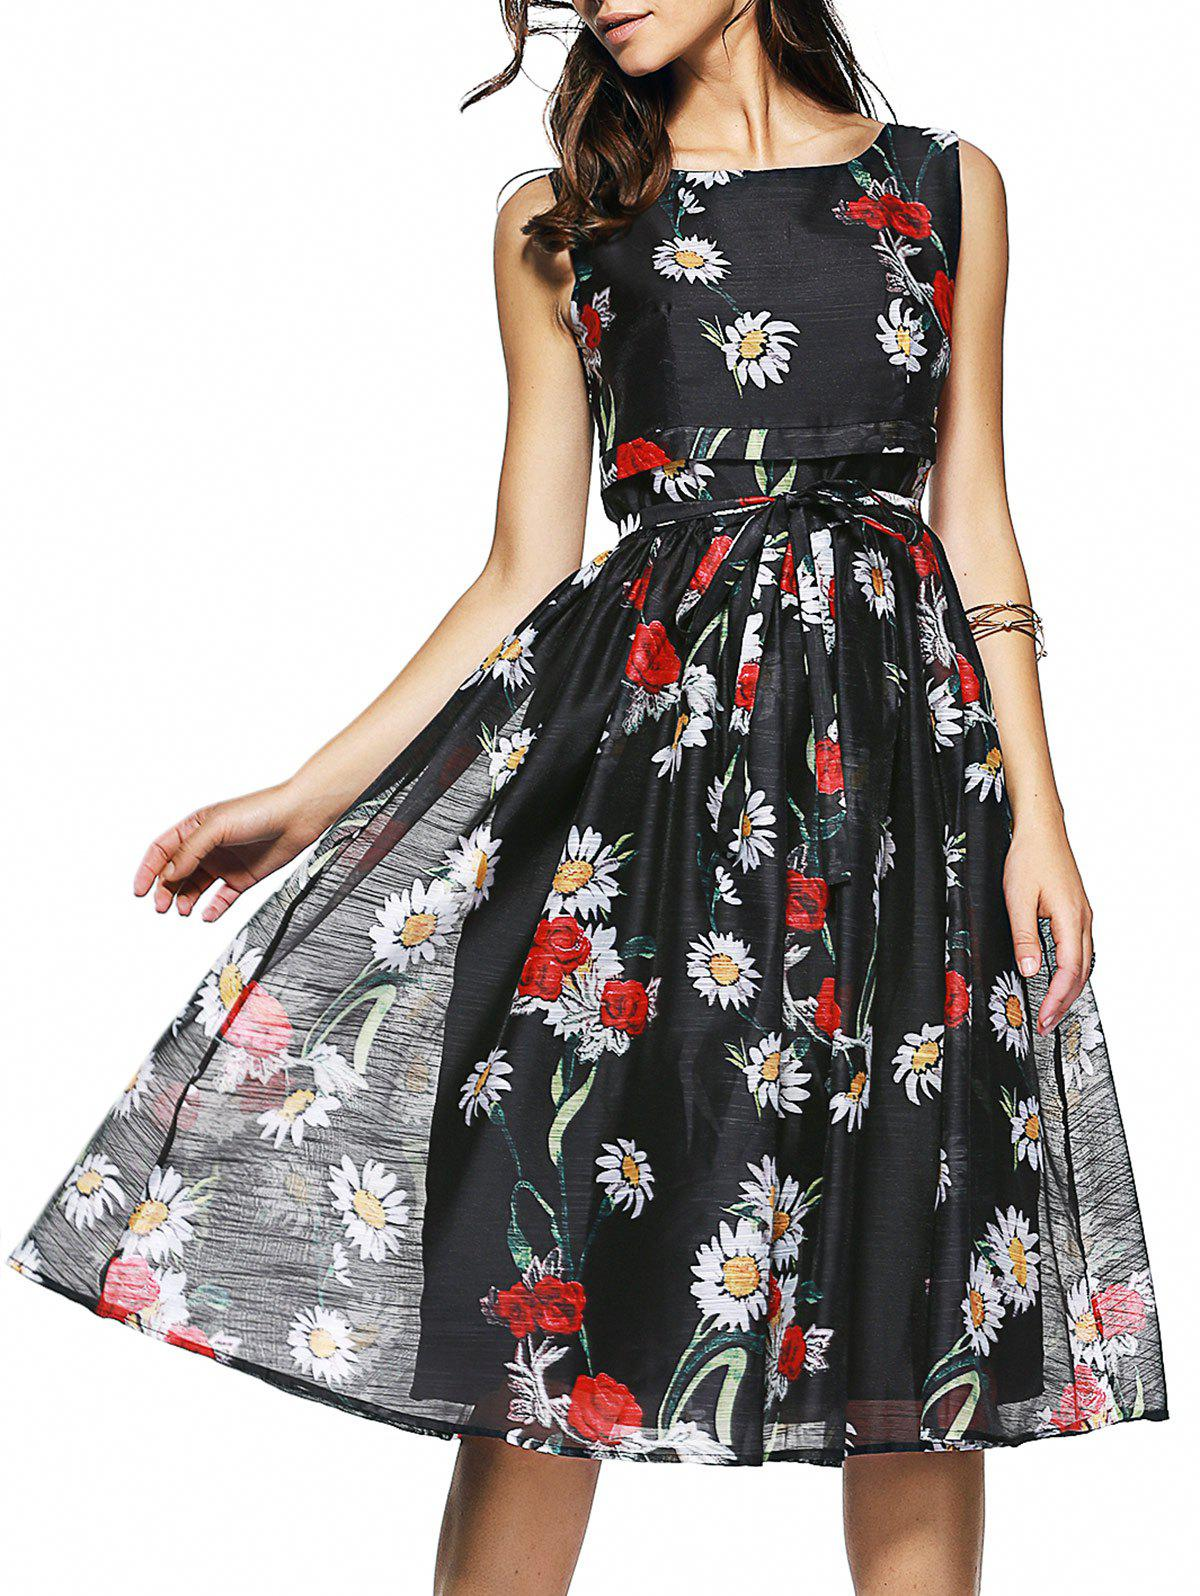 Floral Print Sleeveless Belt-Tie Women's Chiffon Dress